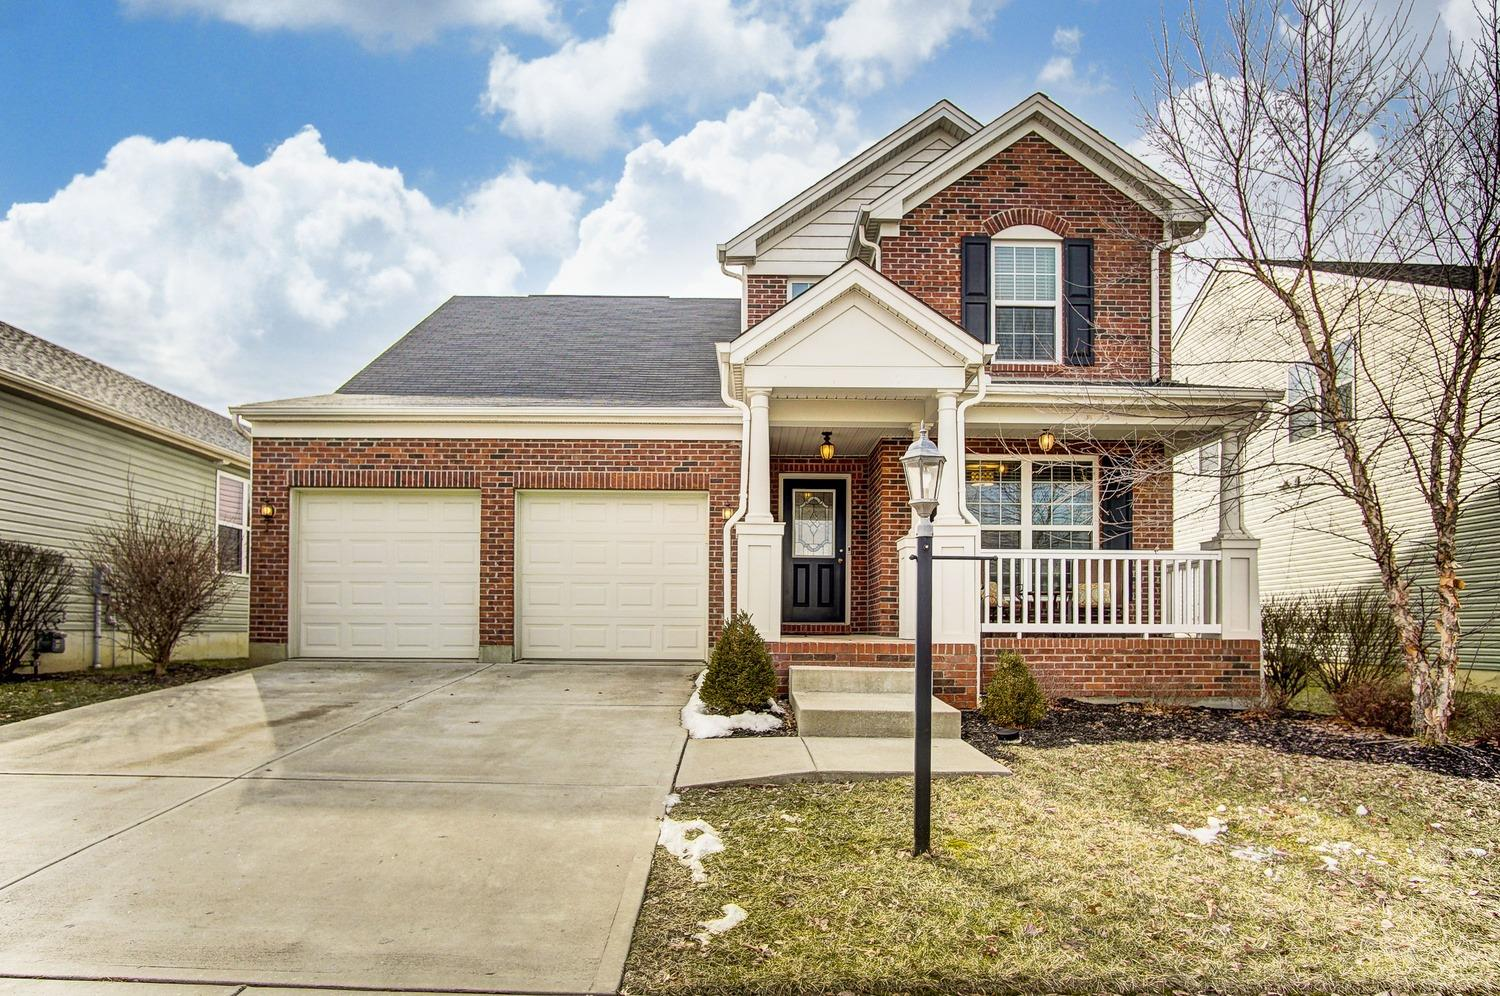 2013 Faith St, Bond Hill, OH 45237 Listing Details: MLS 1608947